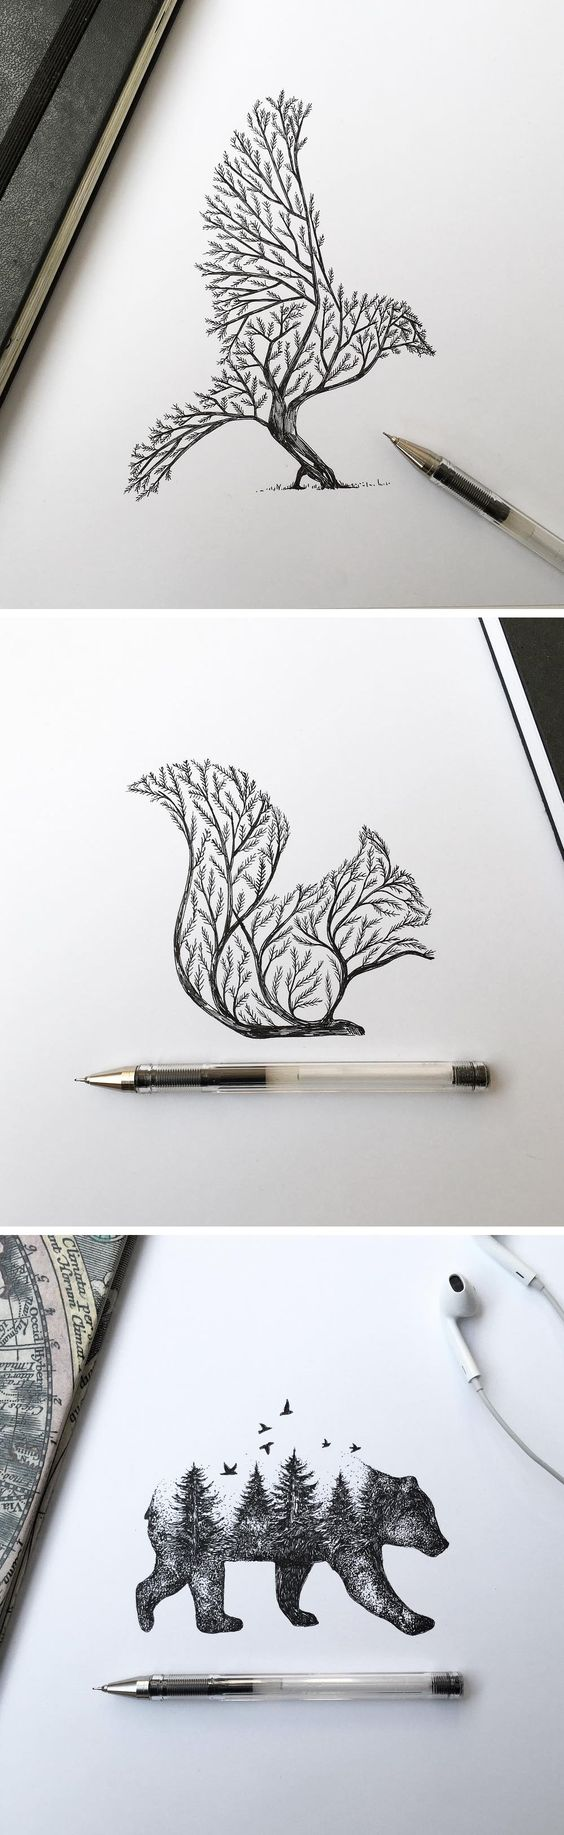 Pen & Ink Depictions of Trees Sprouting into Animals by Alfred Basha: